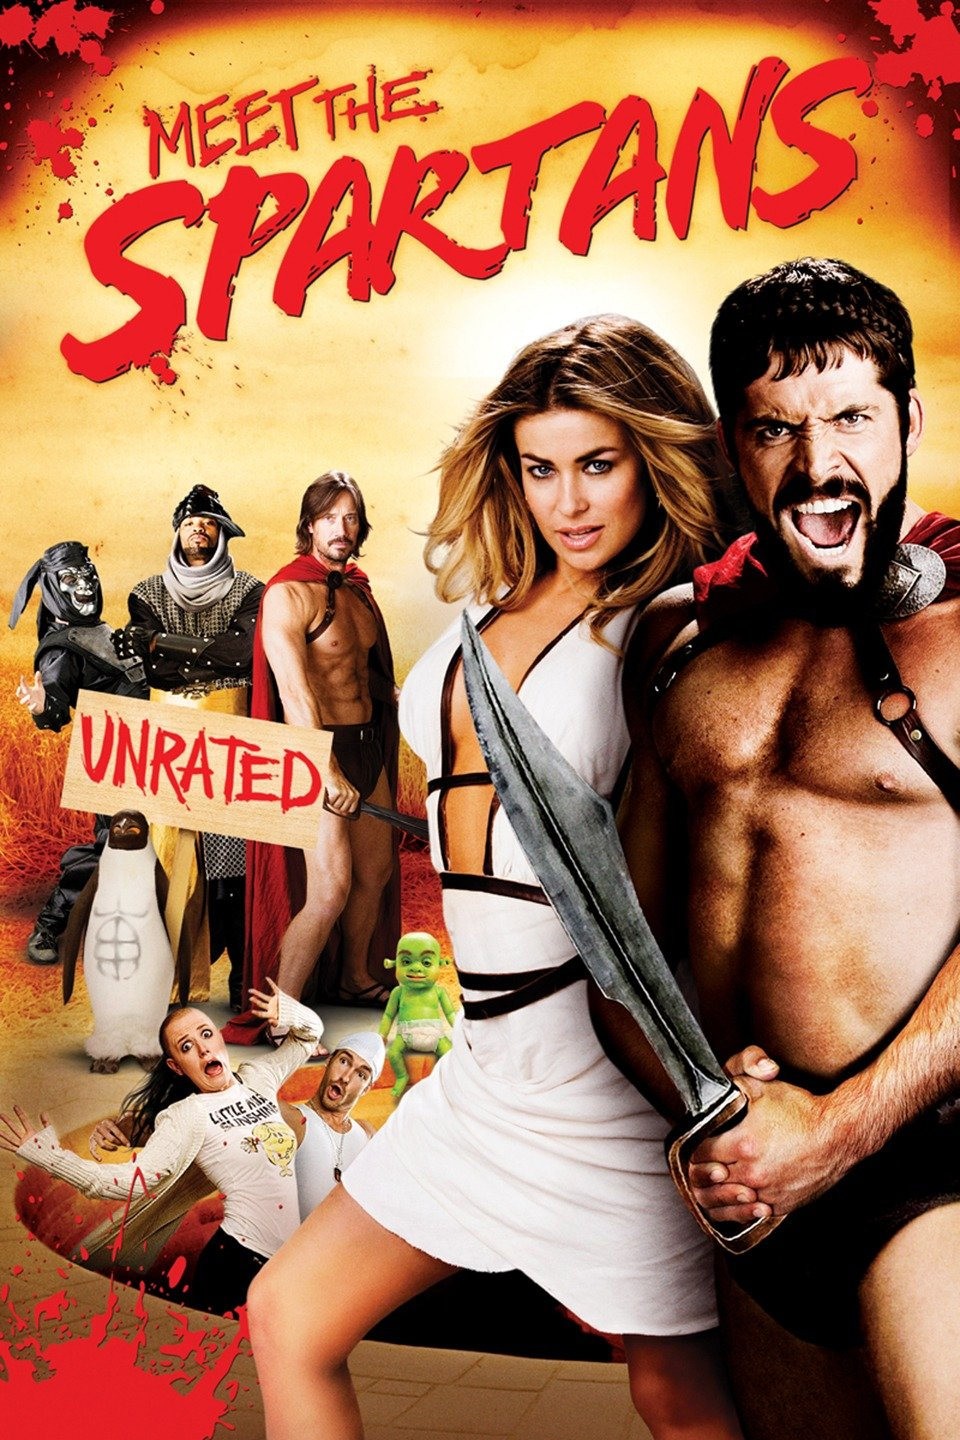 full movie of meet the spartans